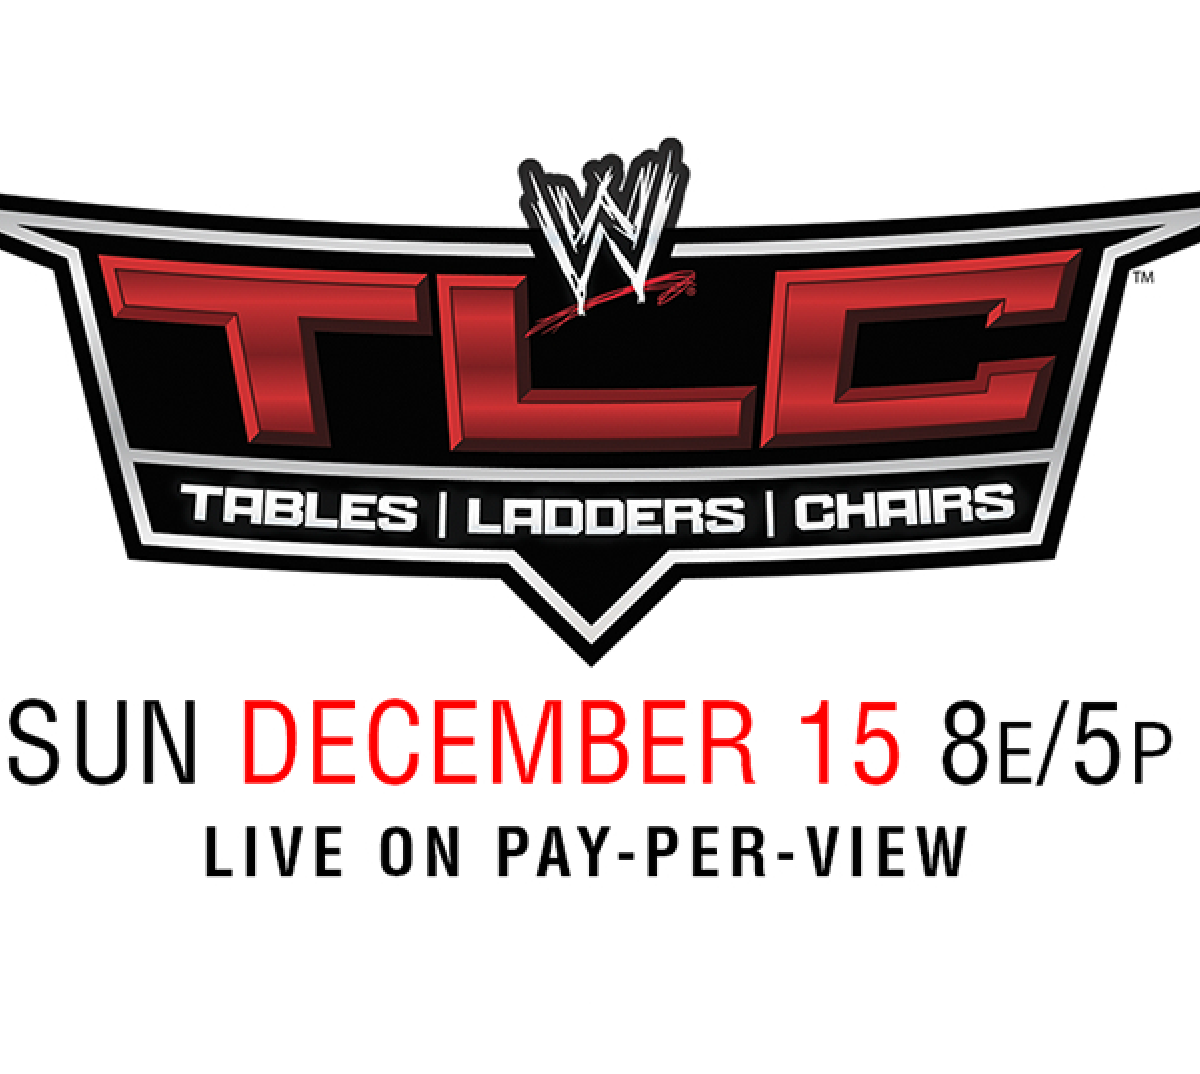 Wwe tables ladders and chairs 2013 poster - Wwe Tlc 2013 Card Full Predictions And Winners For Each Match Bleacher Report